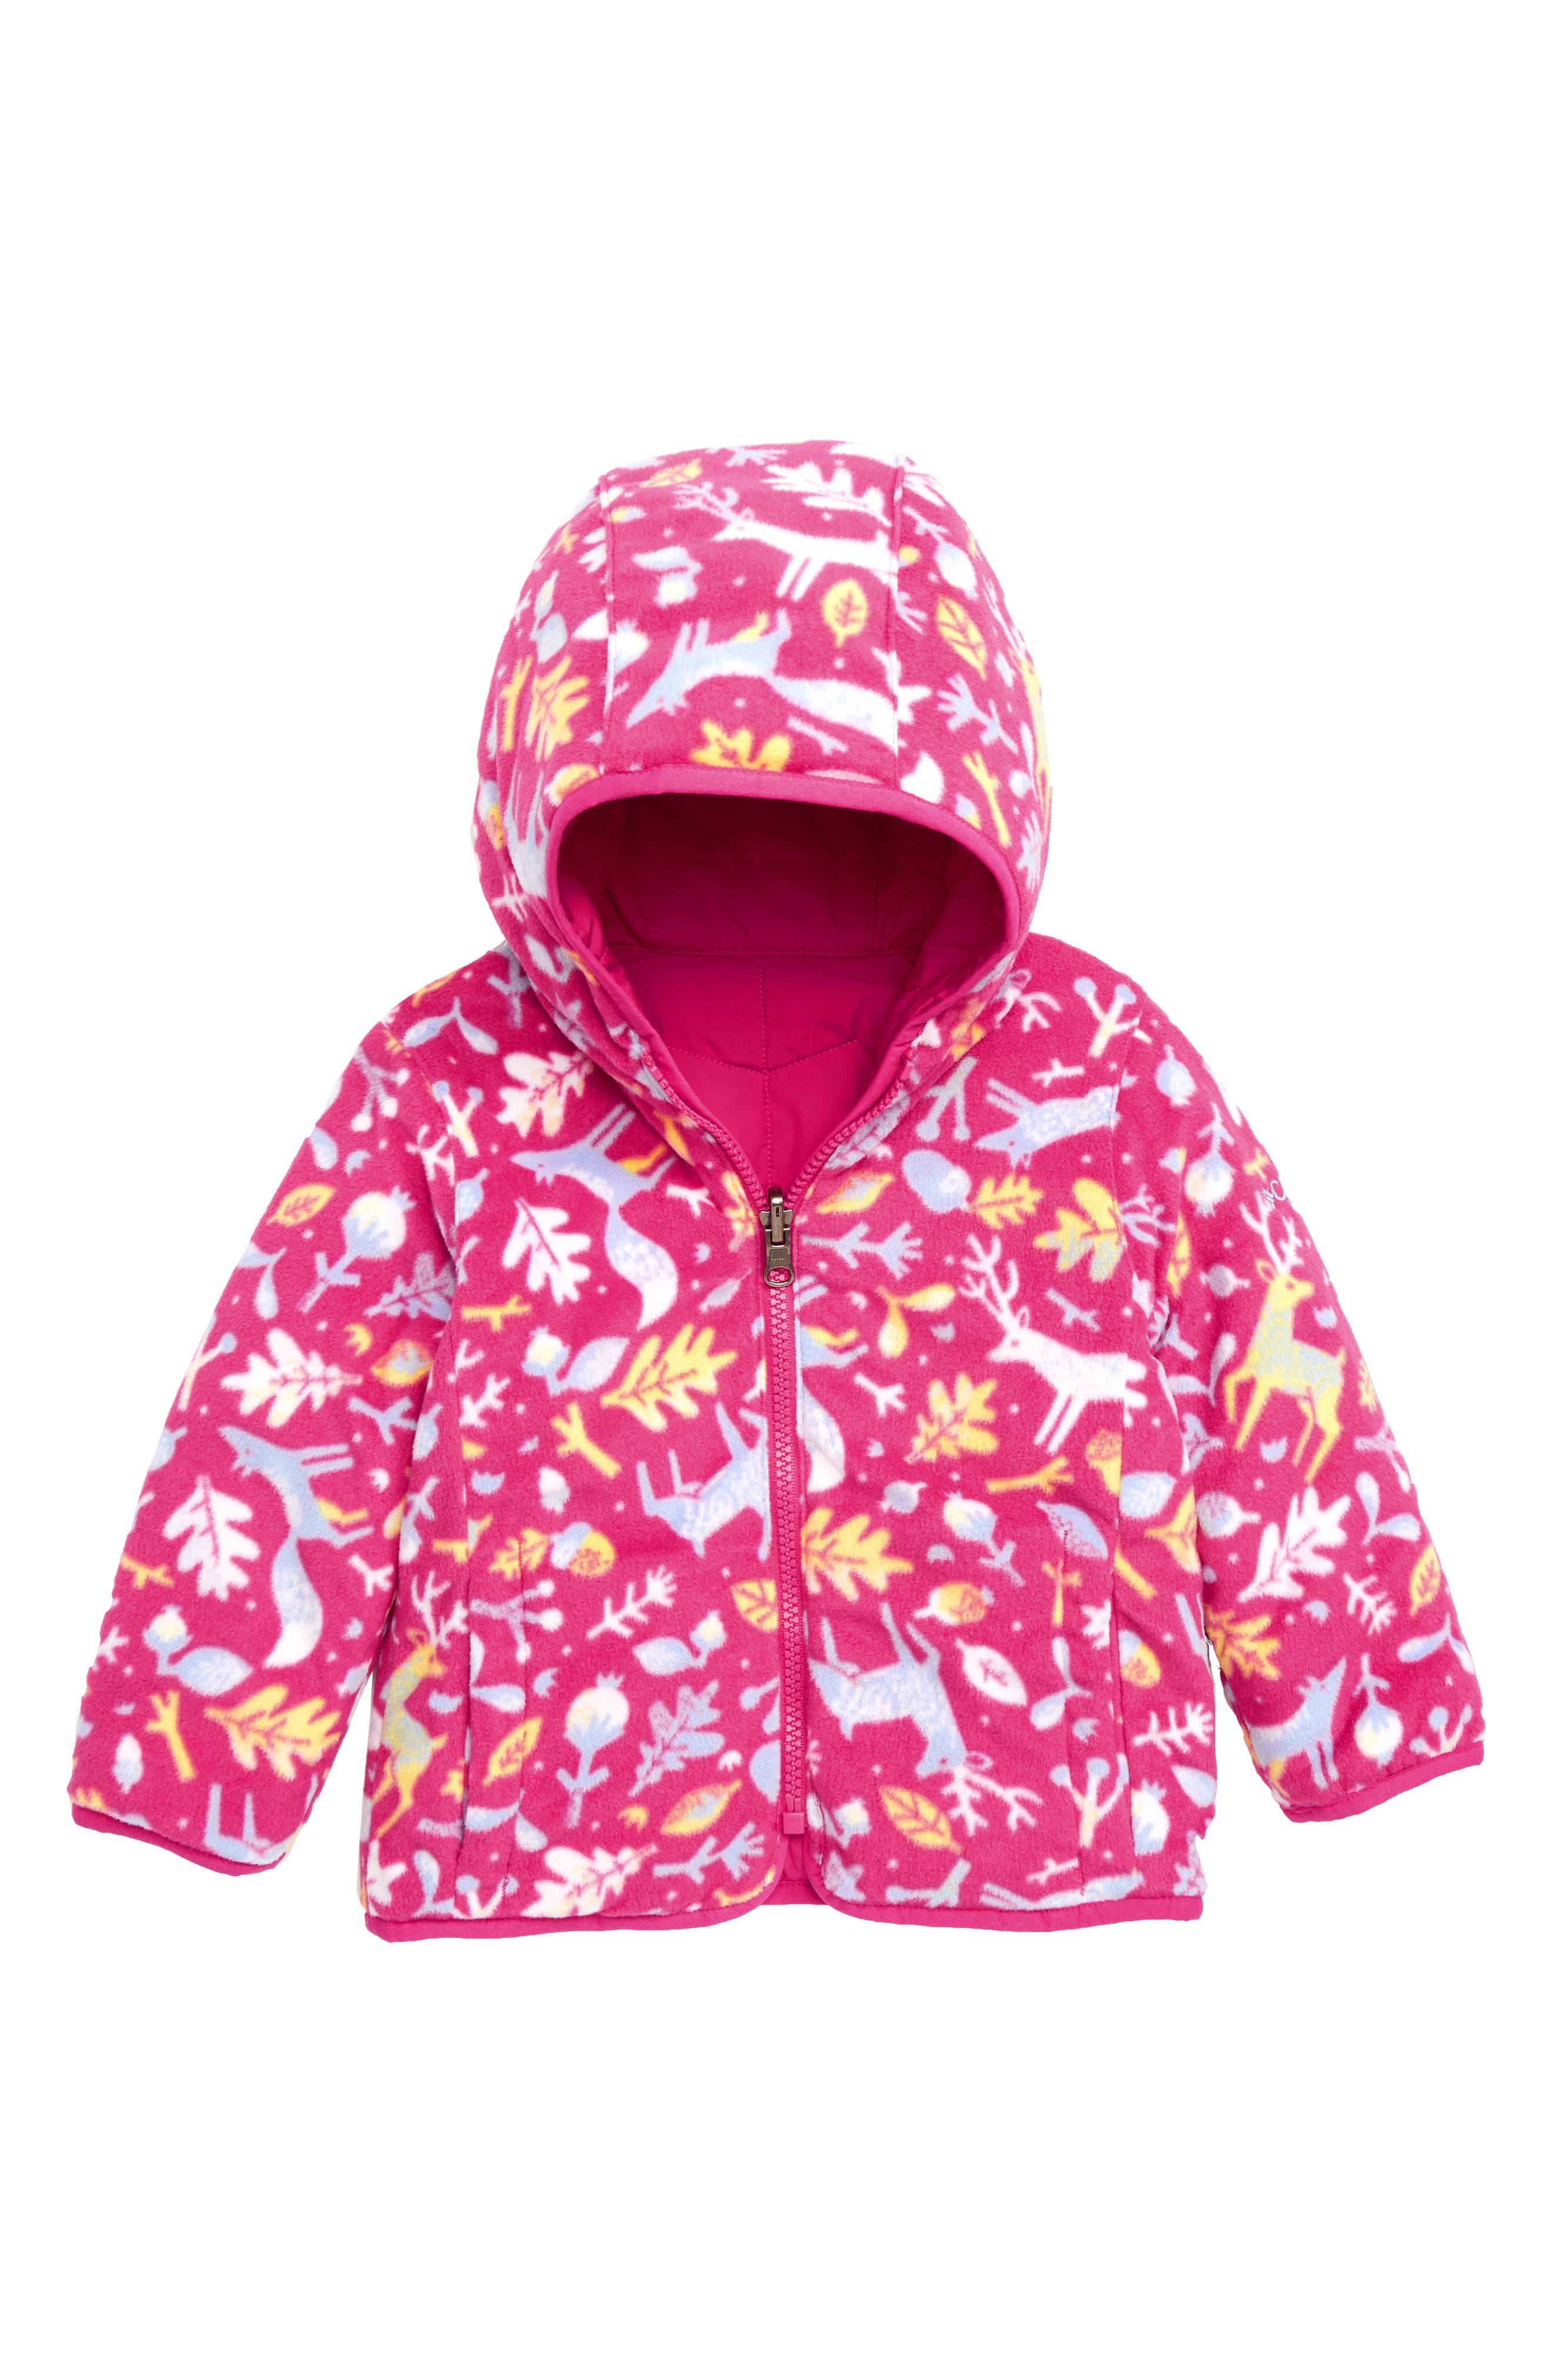 Double Trouble Reversible Water-Resistant Hooded Jacket,                             Alternate thumbnail 2, color,                             CACTUS PINK